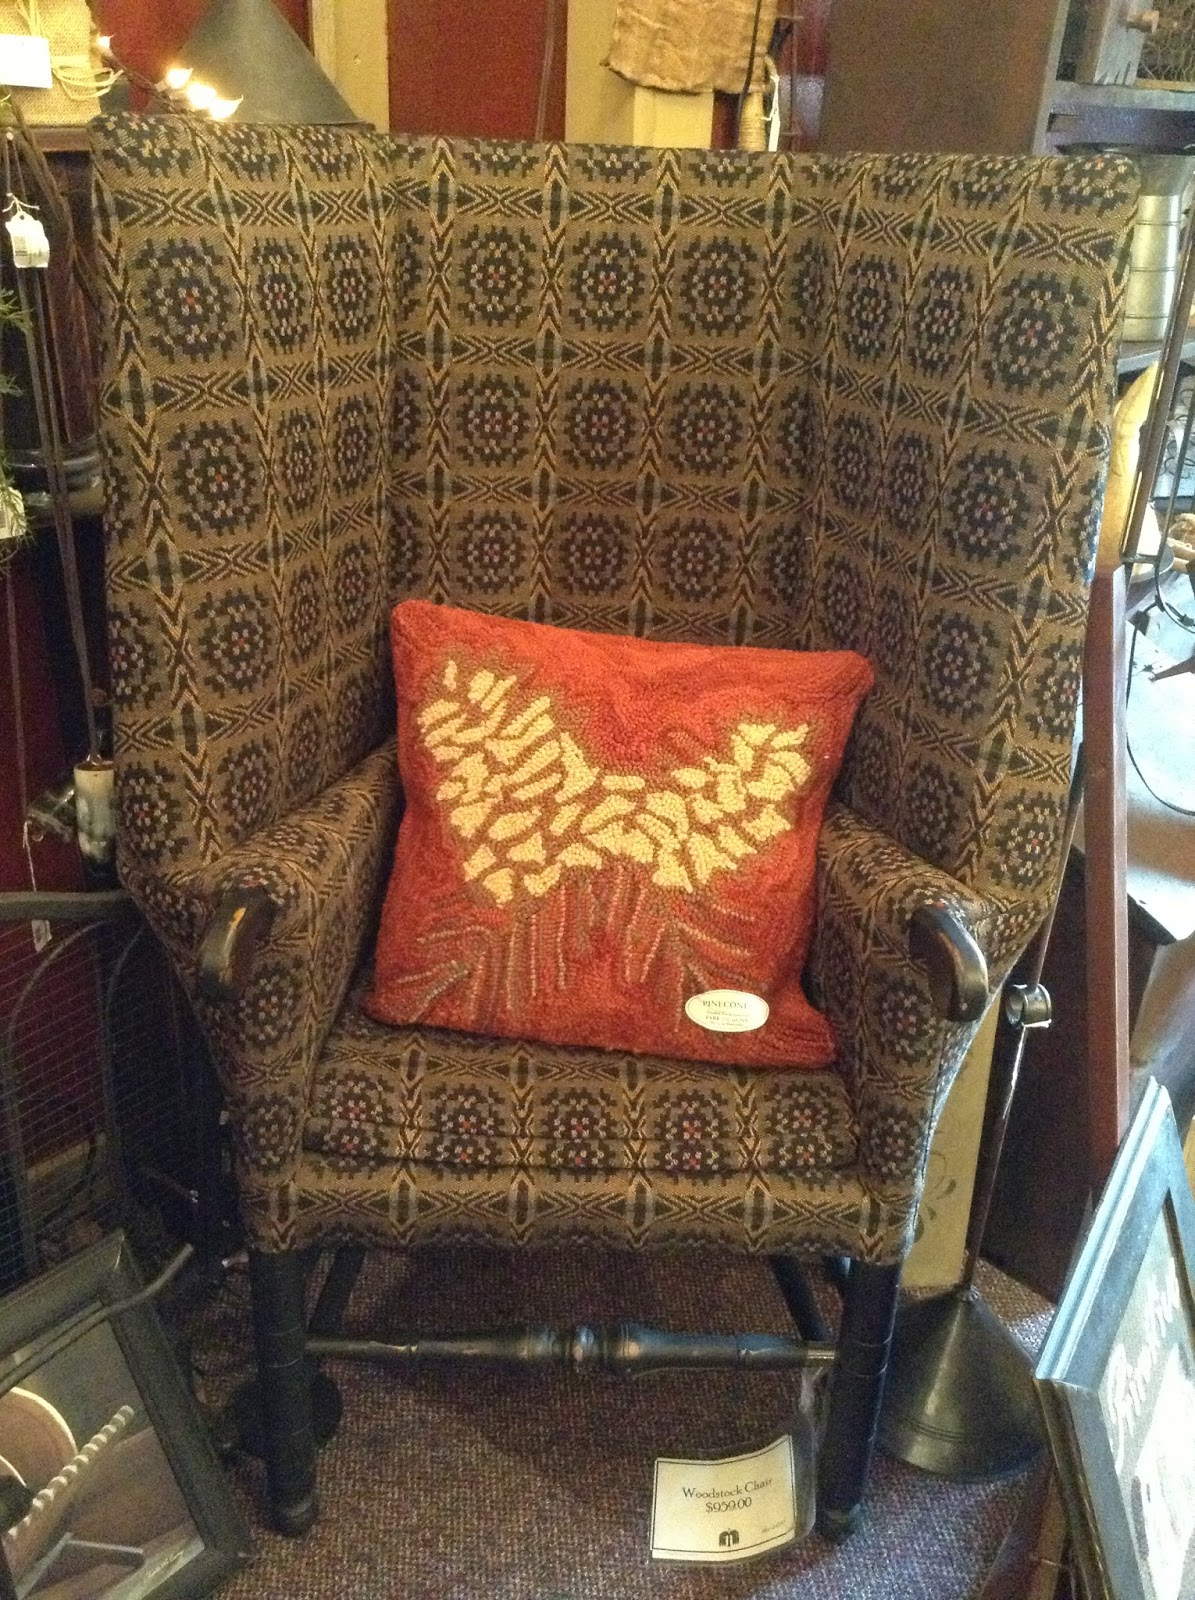 Posture Promoting Chair Sling Replacement Fabric Outdoor Furniture Timeless Traditions The Journey Continues